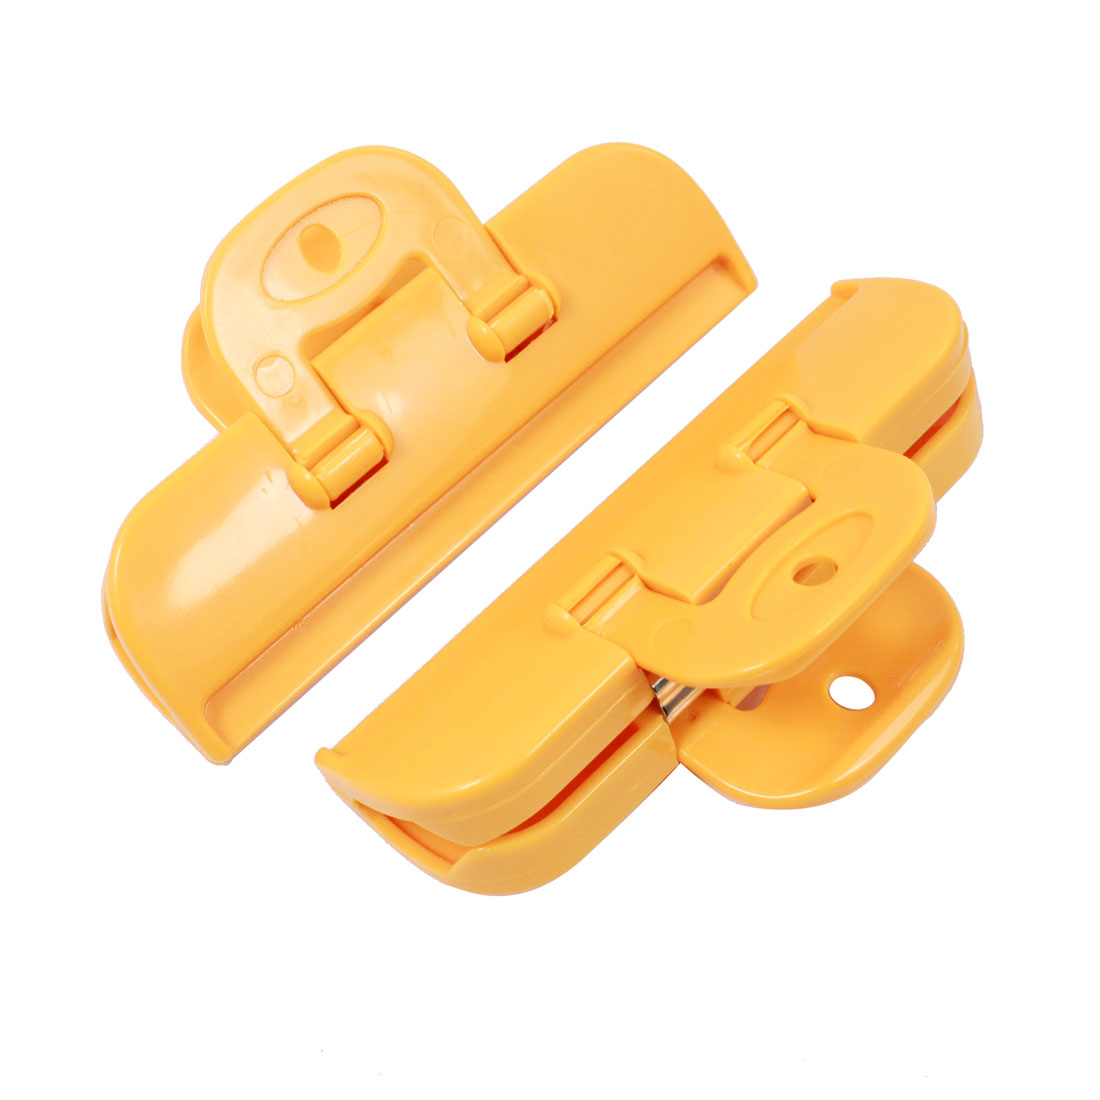 Home Orange Plastic Kitchen Food Storage Seal Bag Clip Clamp 2 Pcs